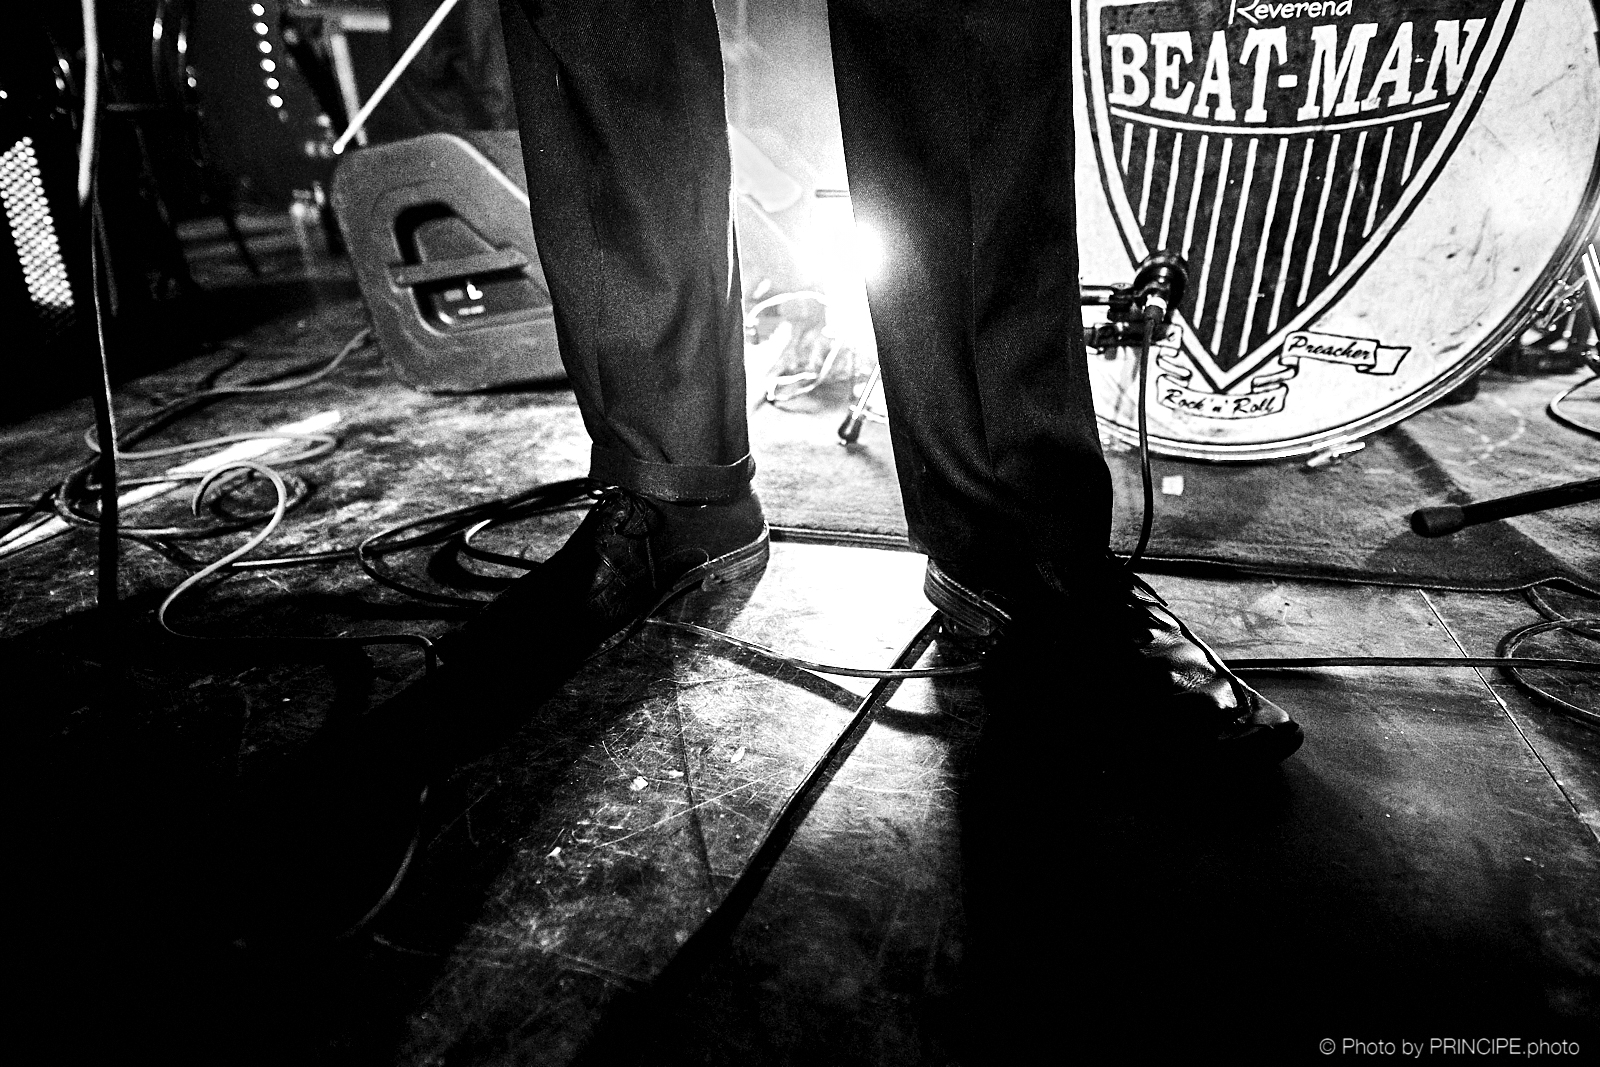 Reverend Beat-Man & the new Wave @ Bad Bonn Kilbi